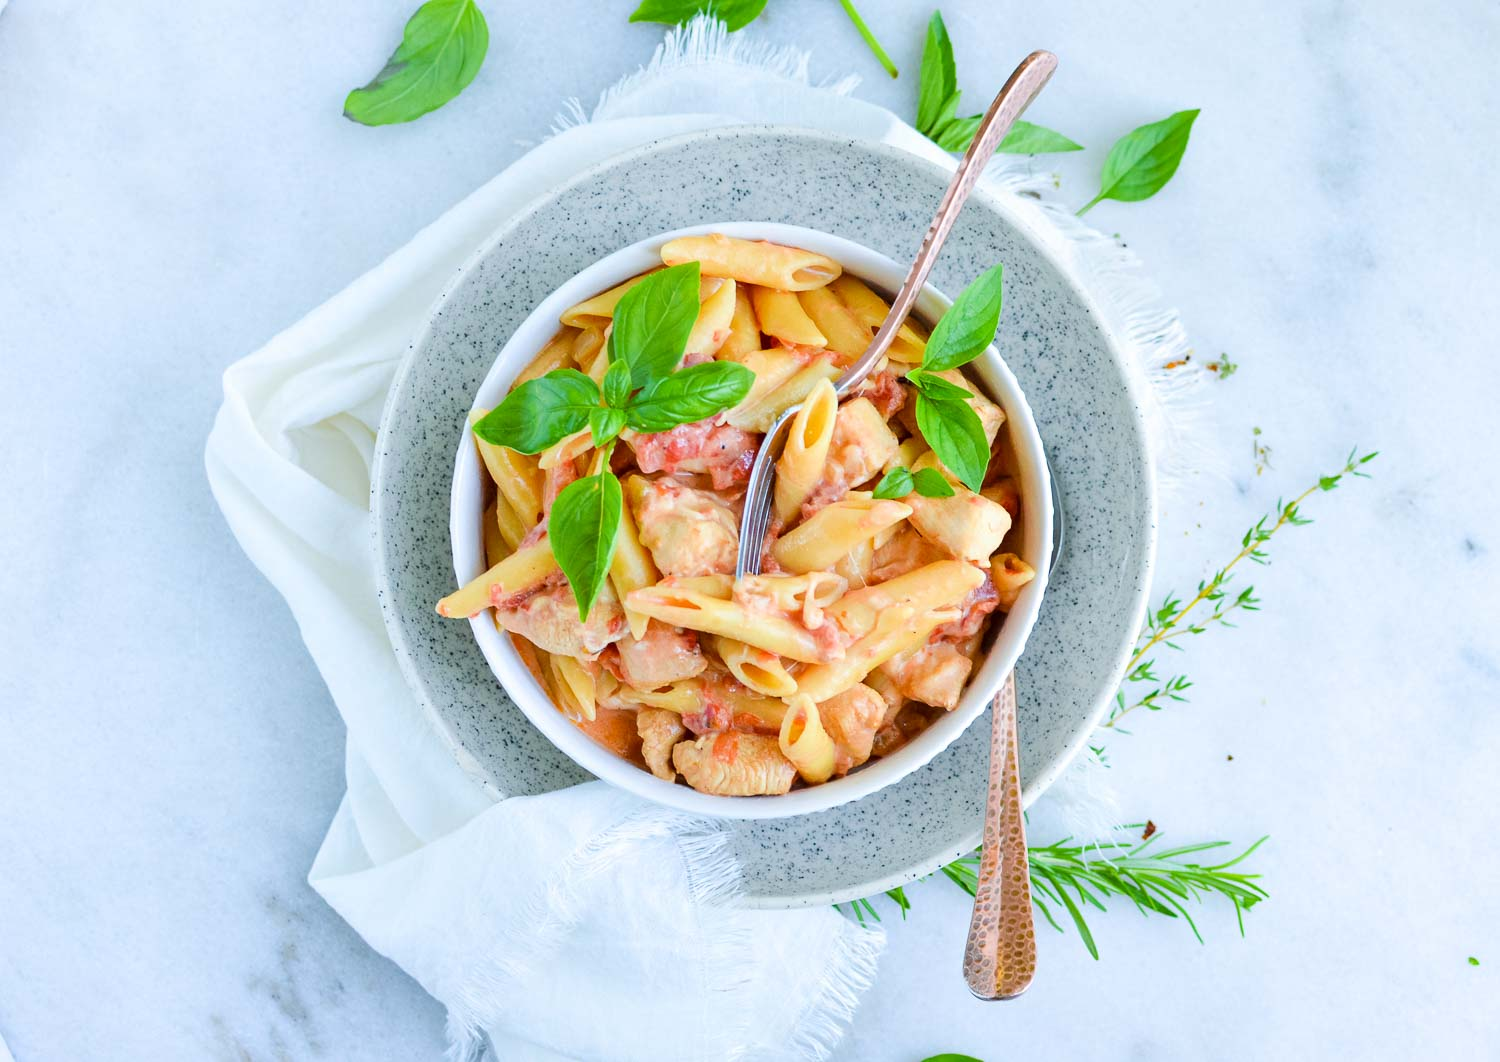 A white bowl inside a speckled bowl full of pasta, cheese, tomatoes and spices with a silver fork in it and a spoon on the side of it with fresh herbs and a white towel around it.